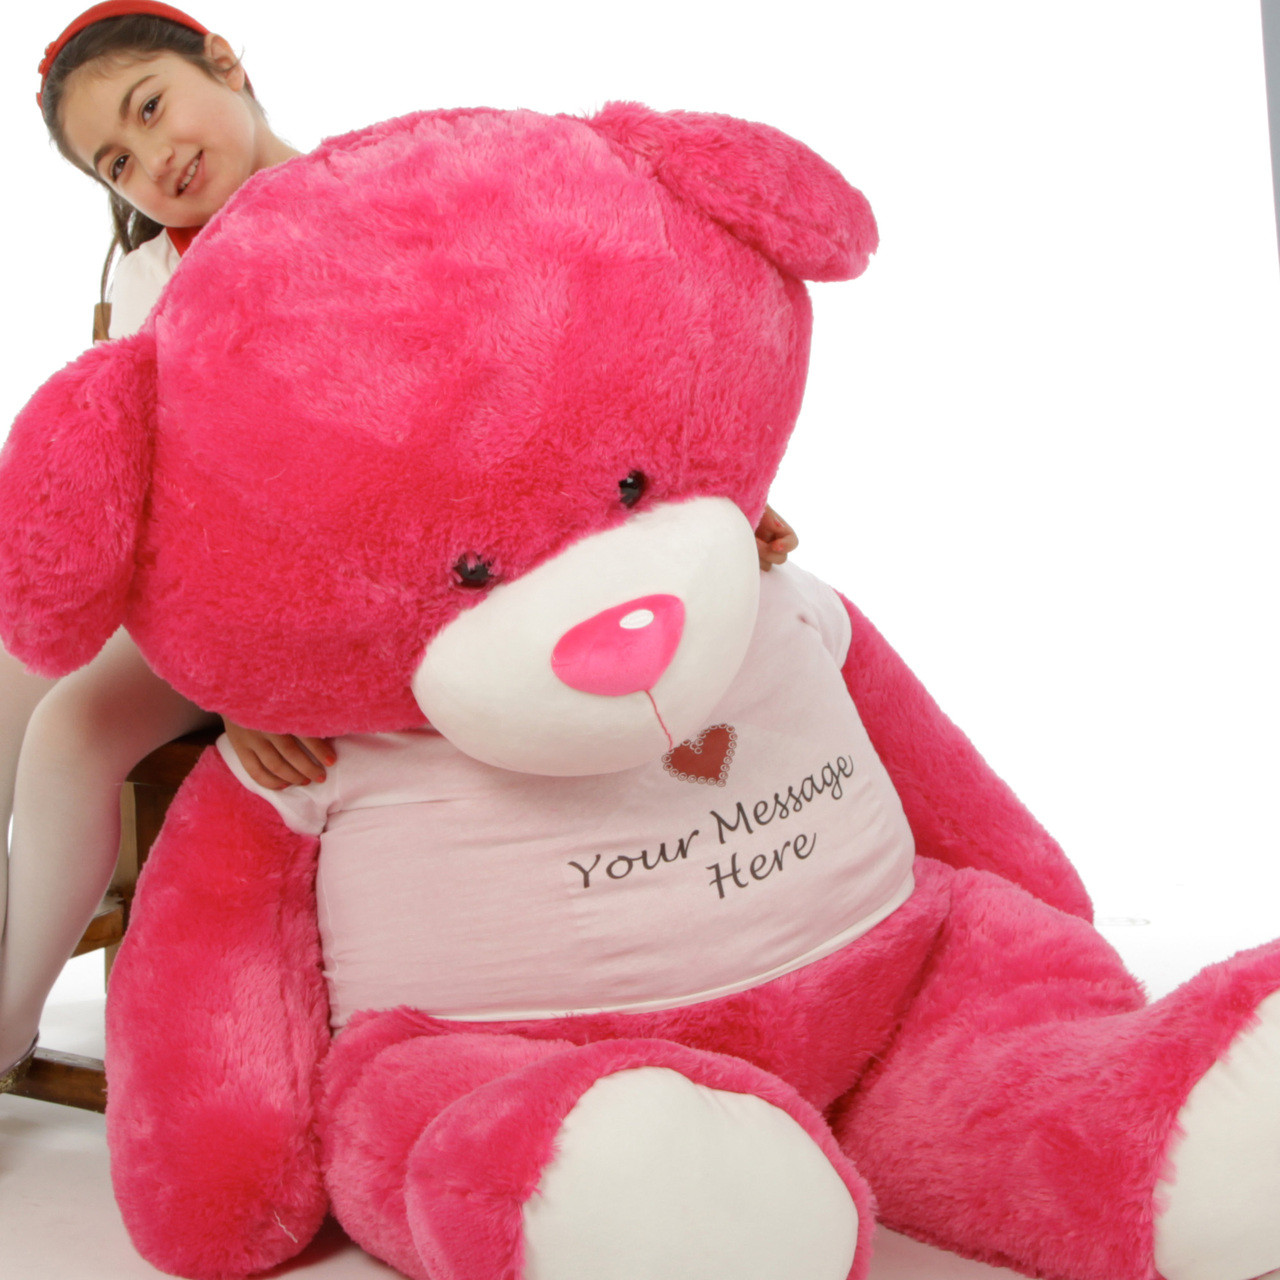 56in (almost 5ft!) hot pink Cha Cha Big Love is personalized with your message of love